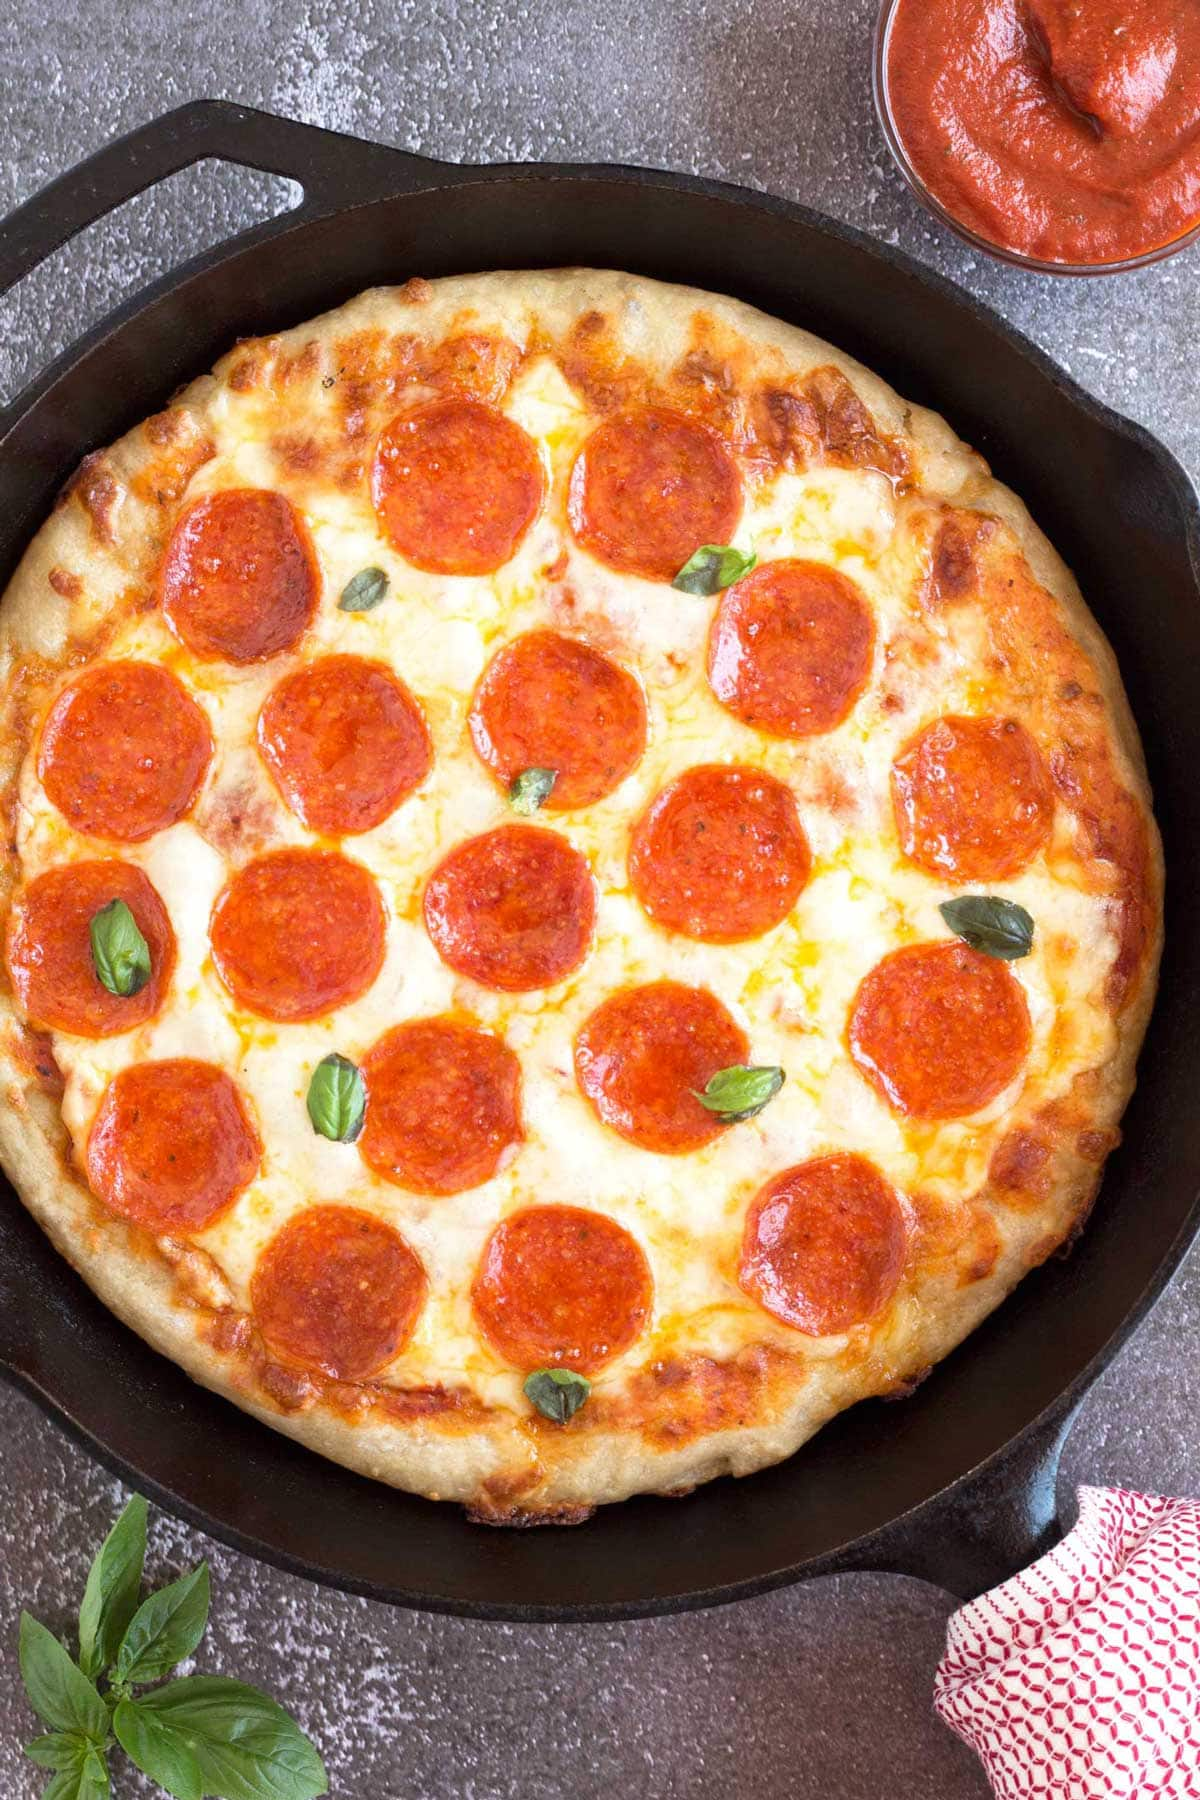 Pepperoni pan pizza in a 12-inch skillet with fresh basil.